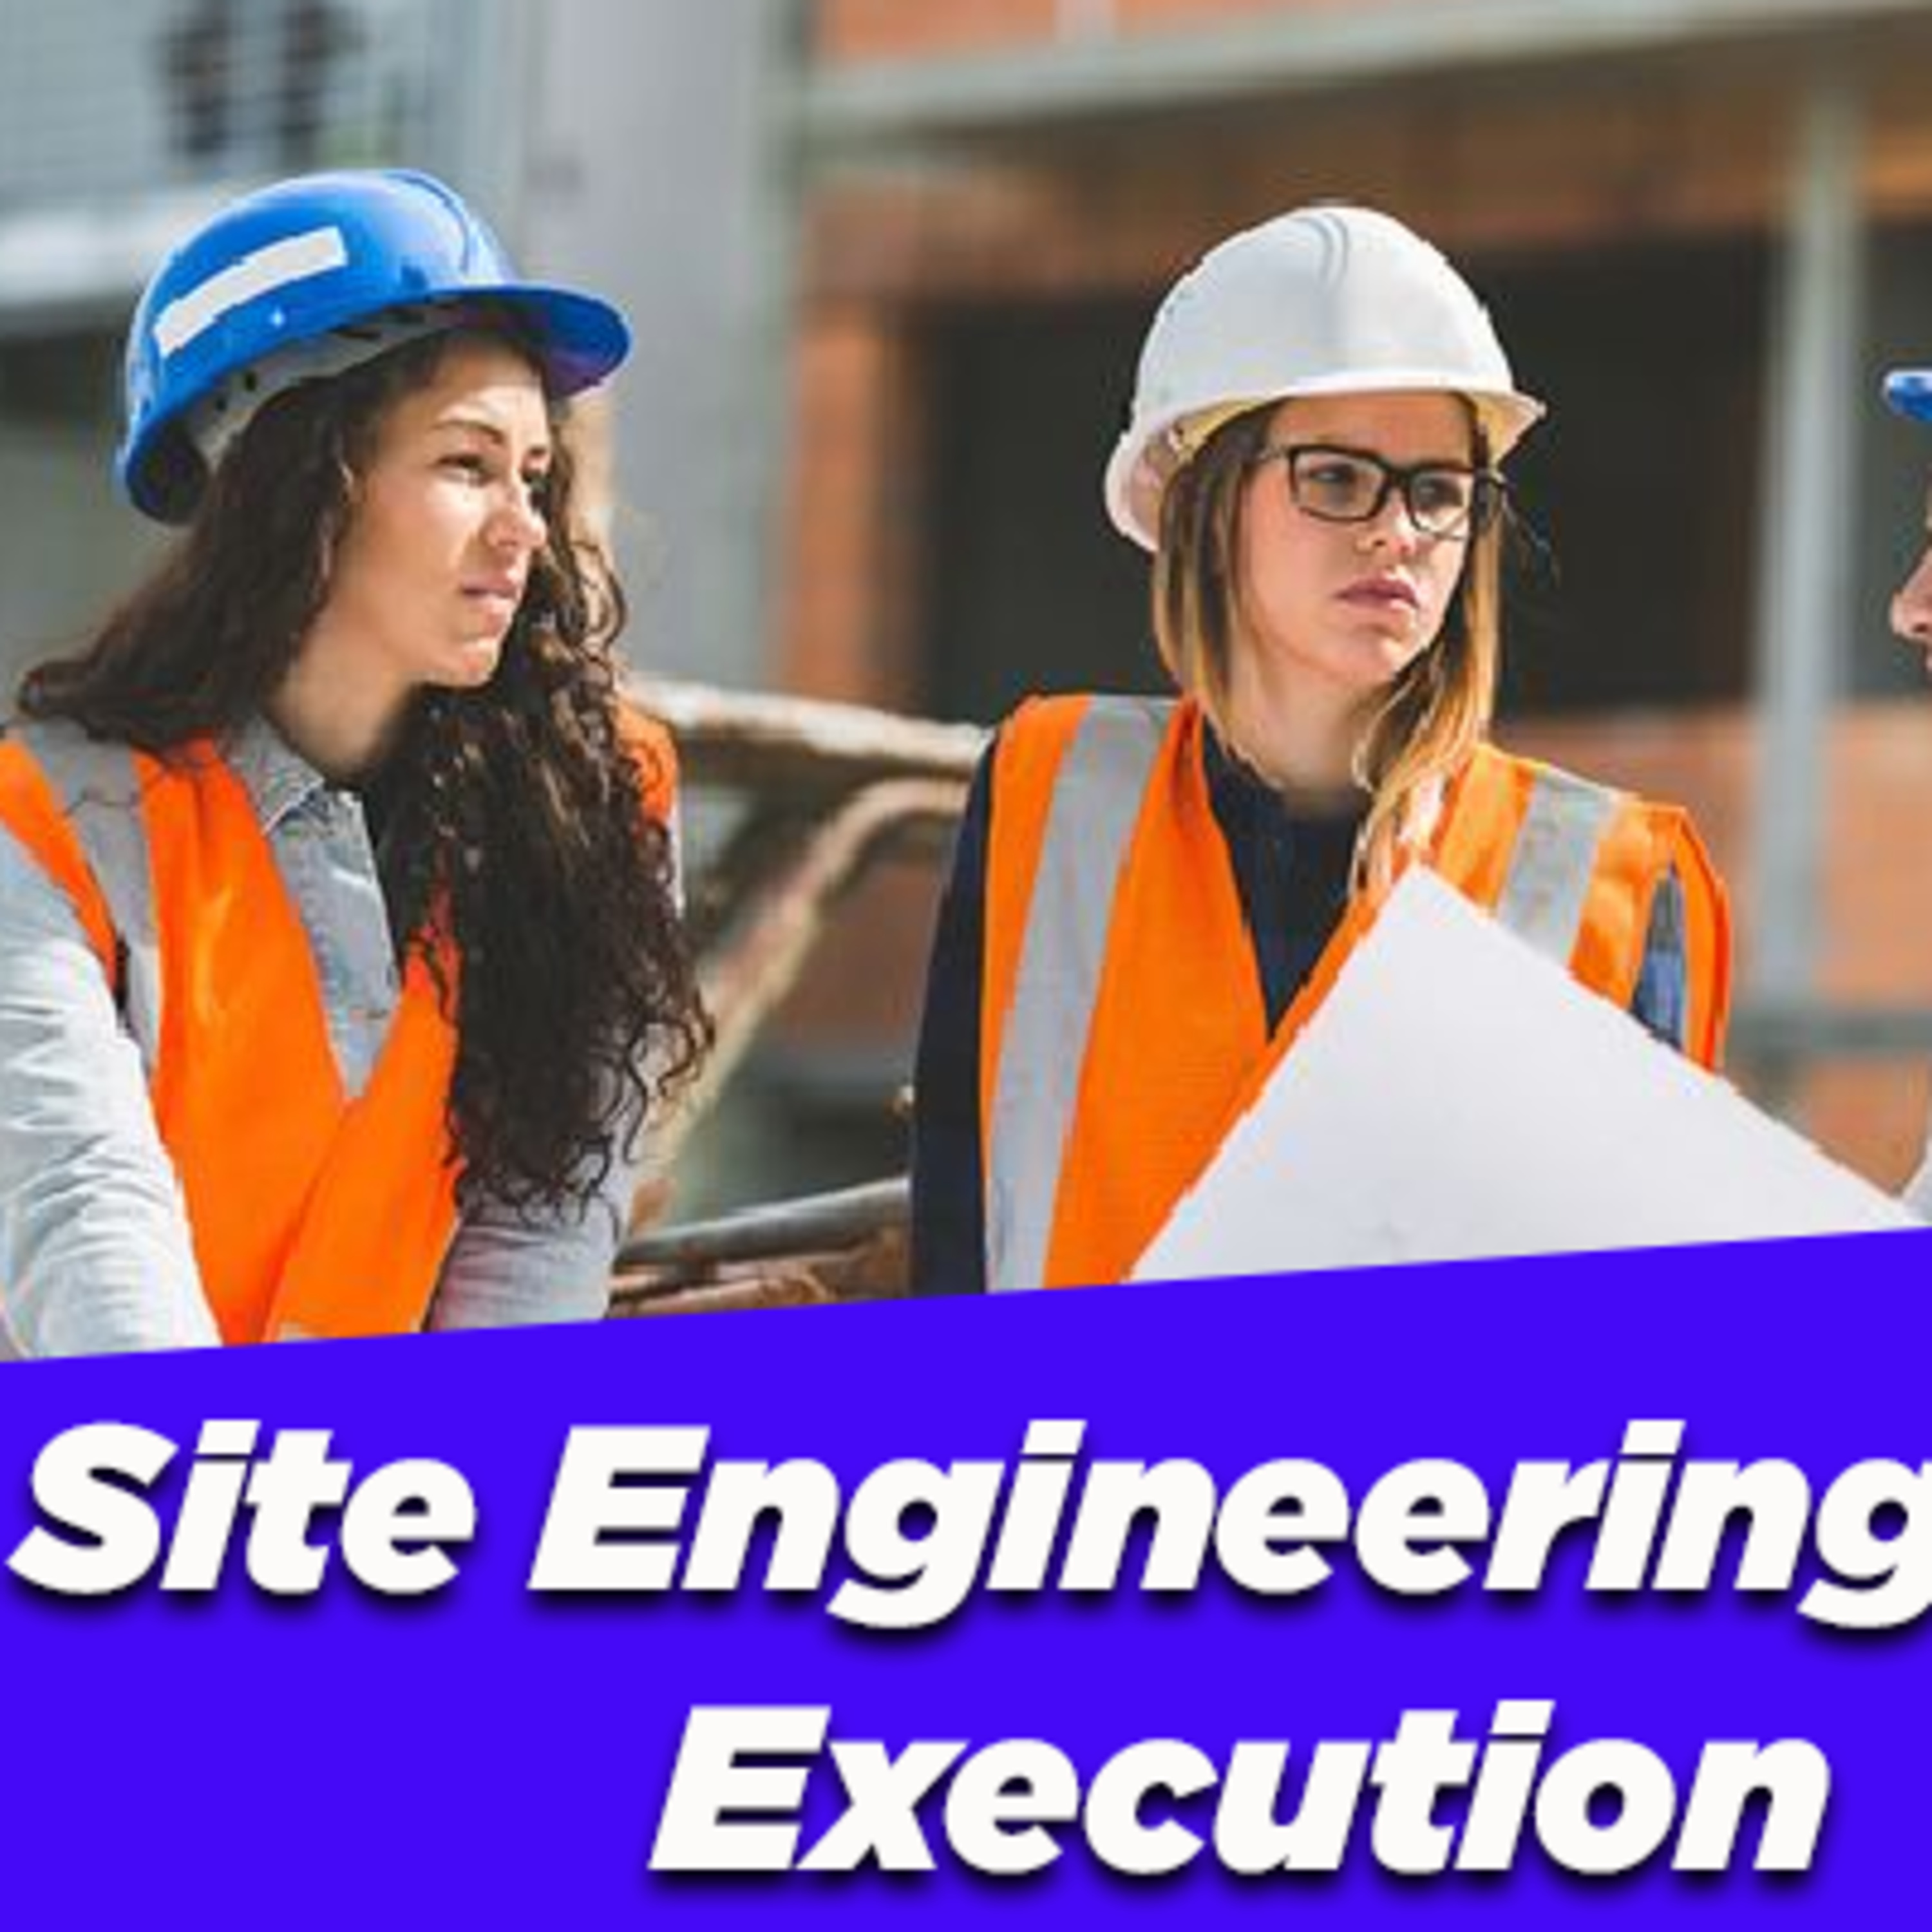 Site execution challenges